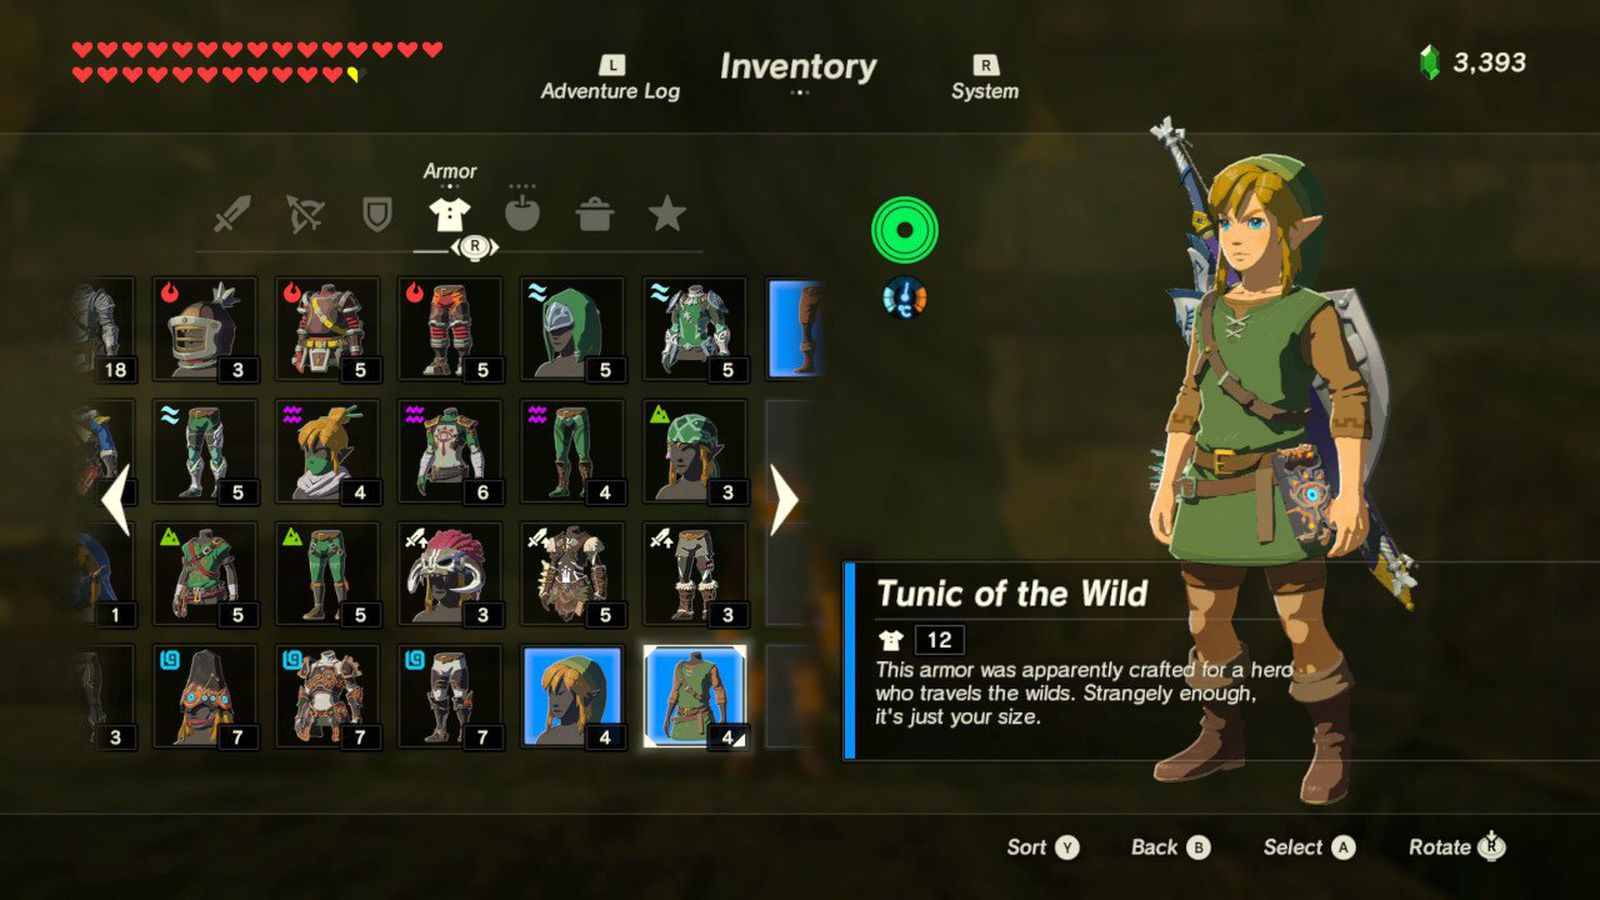 You can unlock Link's classic green tunic in The Legend of Zelda: Breath of the Wild